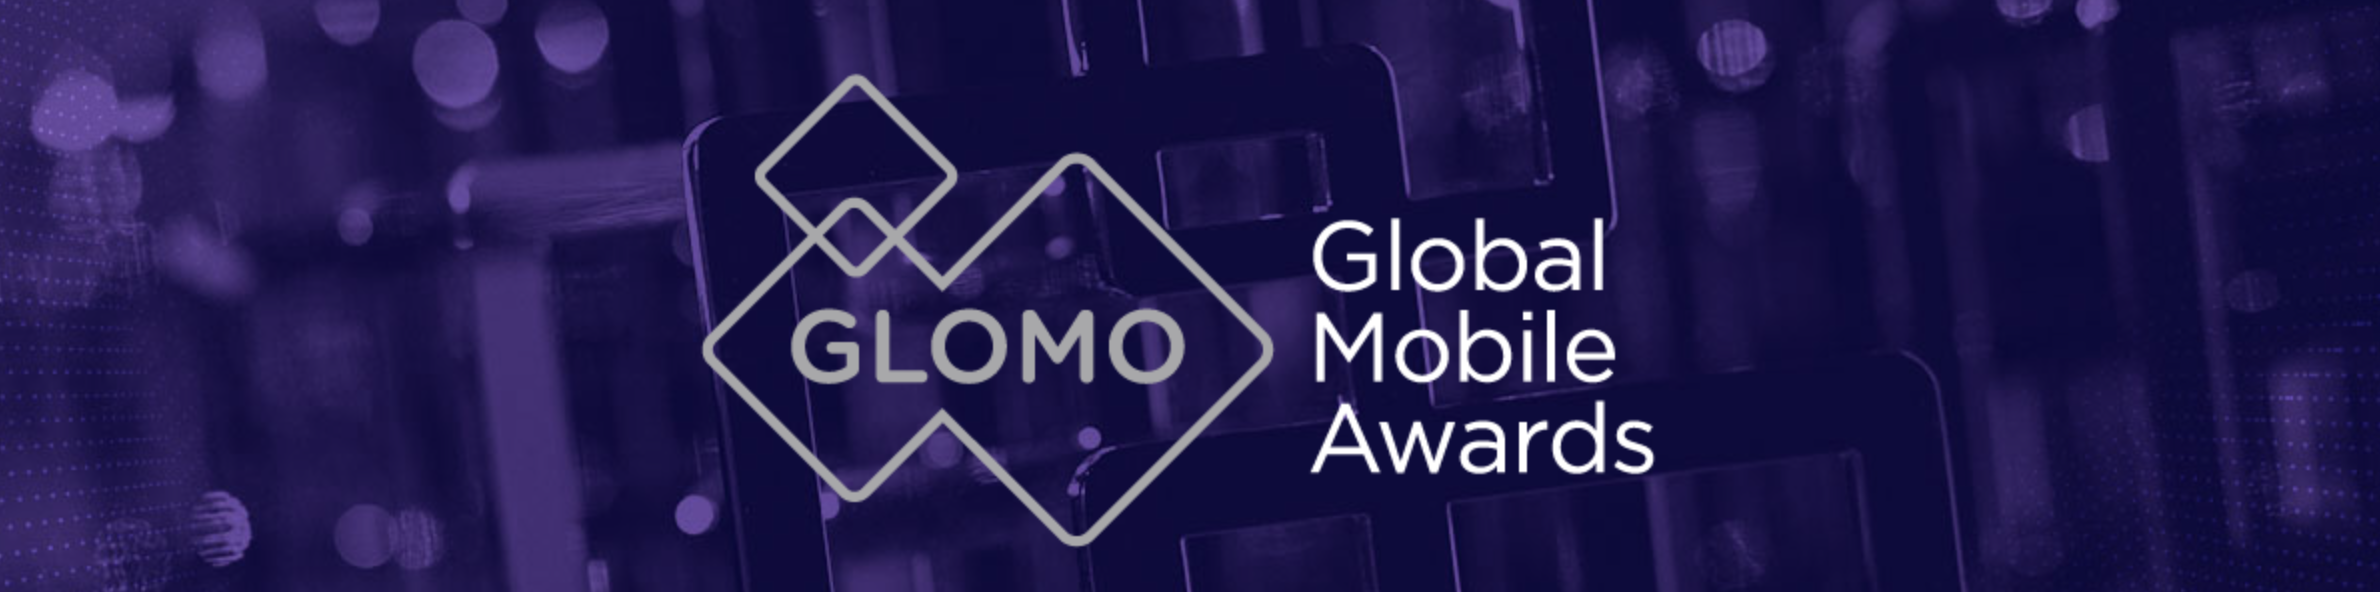 innovationscouts judge at glomo awards mwc 2019